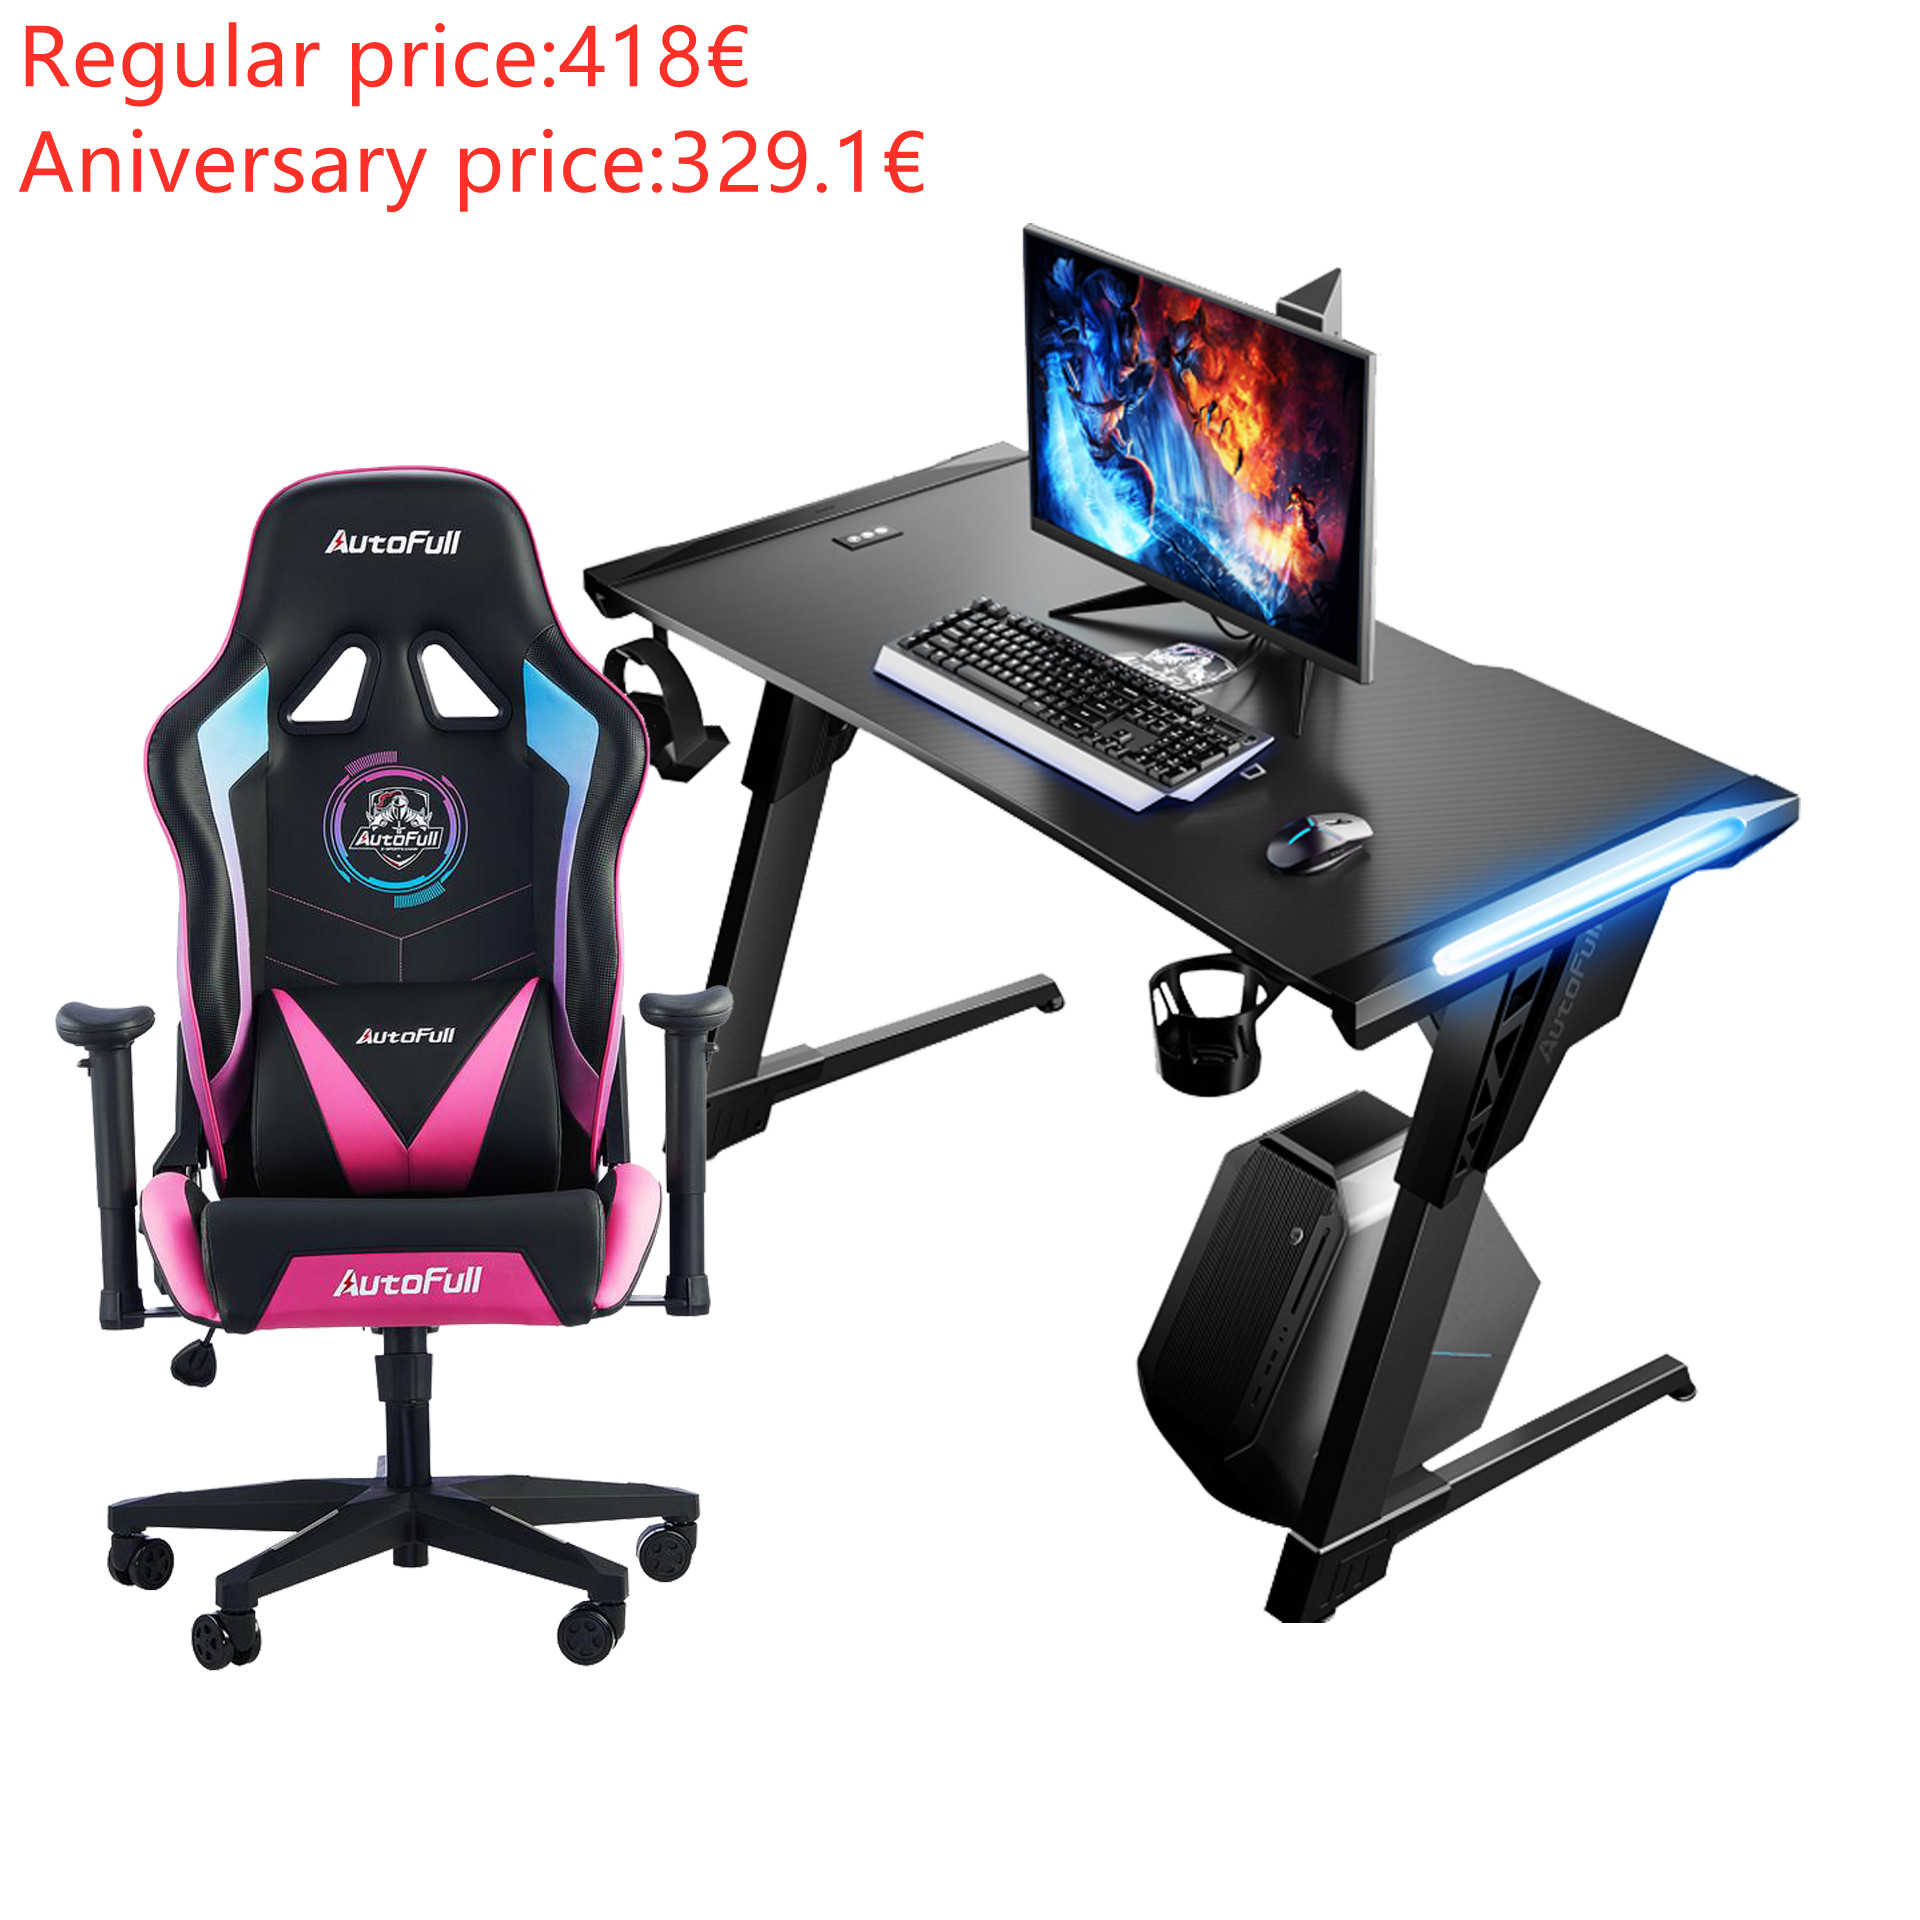 Autofull AF075RPU+AFDJZ004B Gaming Chair and Desk Combo